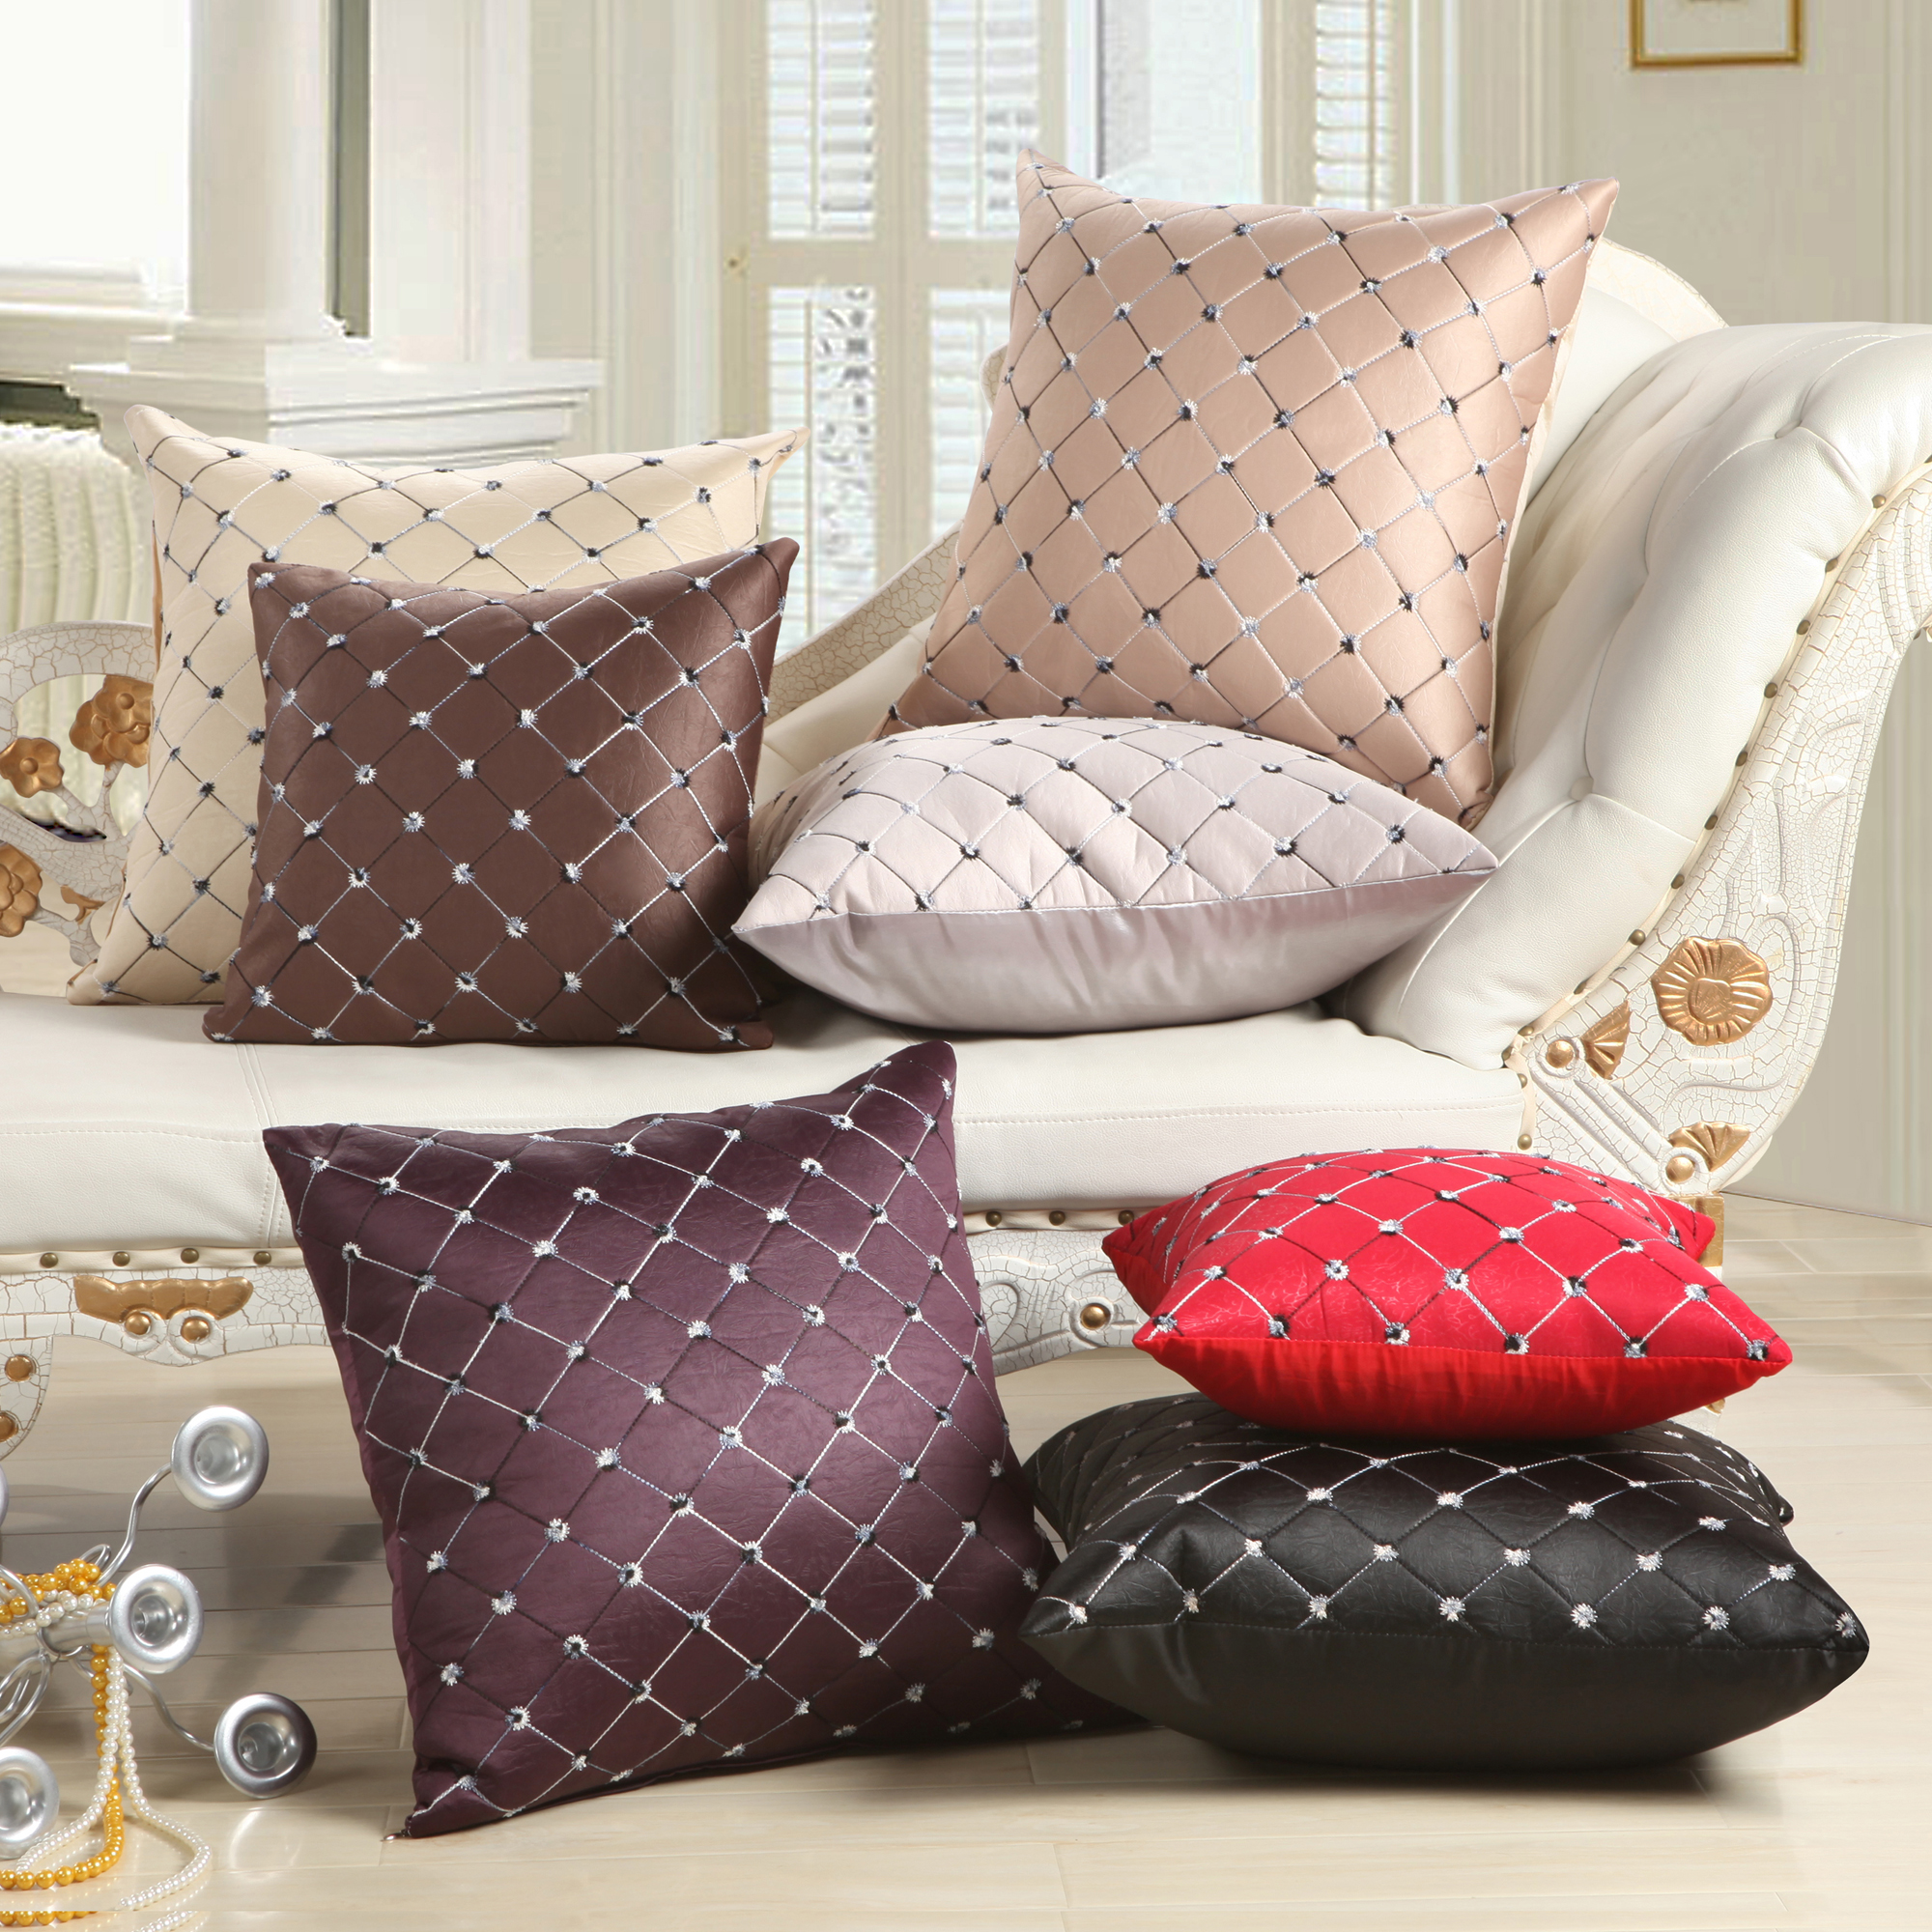 American Simplicity Style Leather Texture Embroidered Cushion Covers Fashion Solid Plaid Pillow 45*45cm Decorative